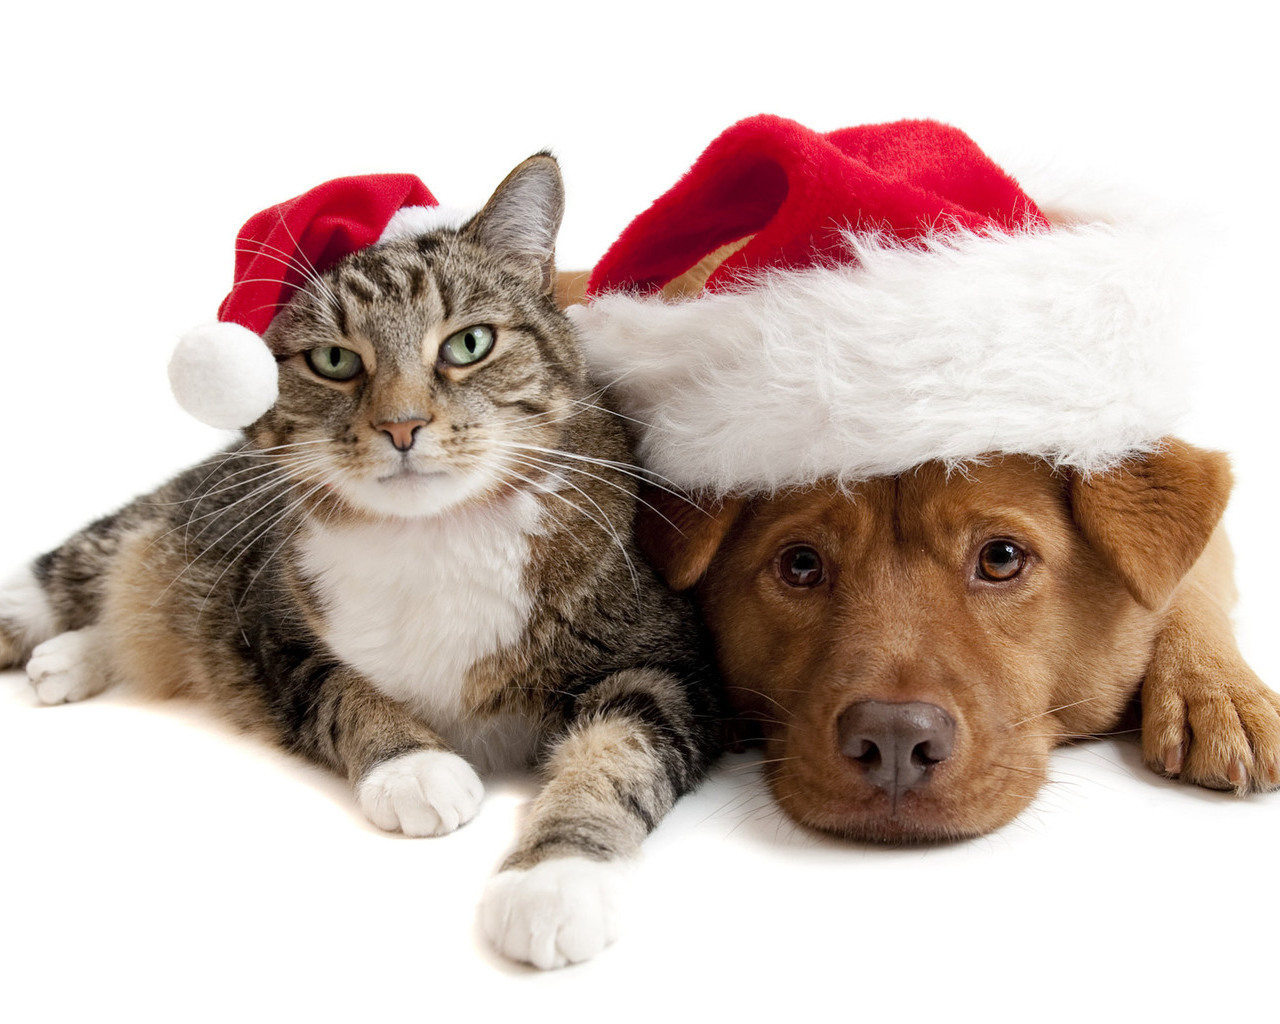 13866 download wallpaper Holidays, Animals, Cats, Dogs, New Year, Christmas, Xmas screensavers and pictures for free